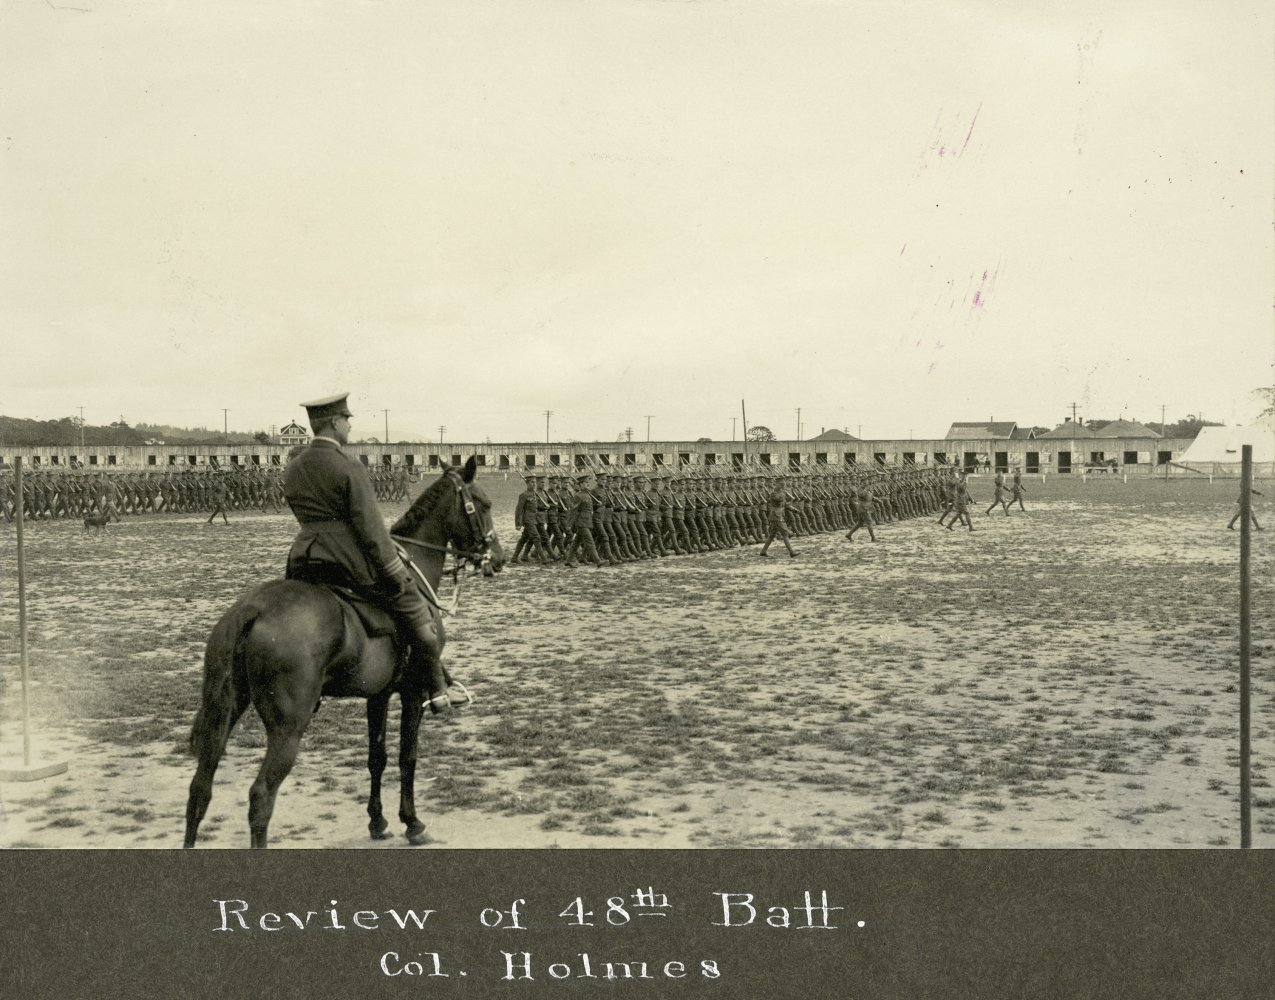 Colonel Holmes reviewing the 48th Battalion.